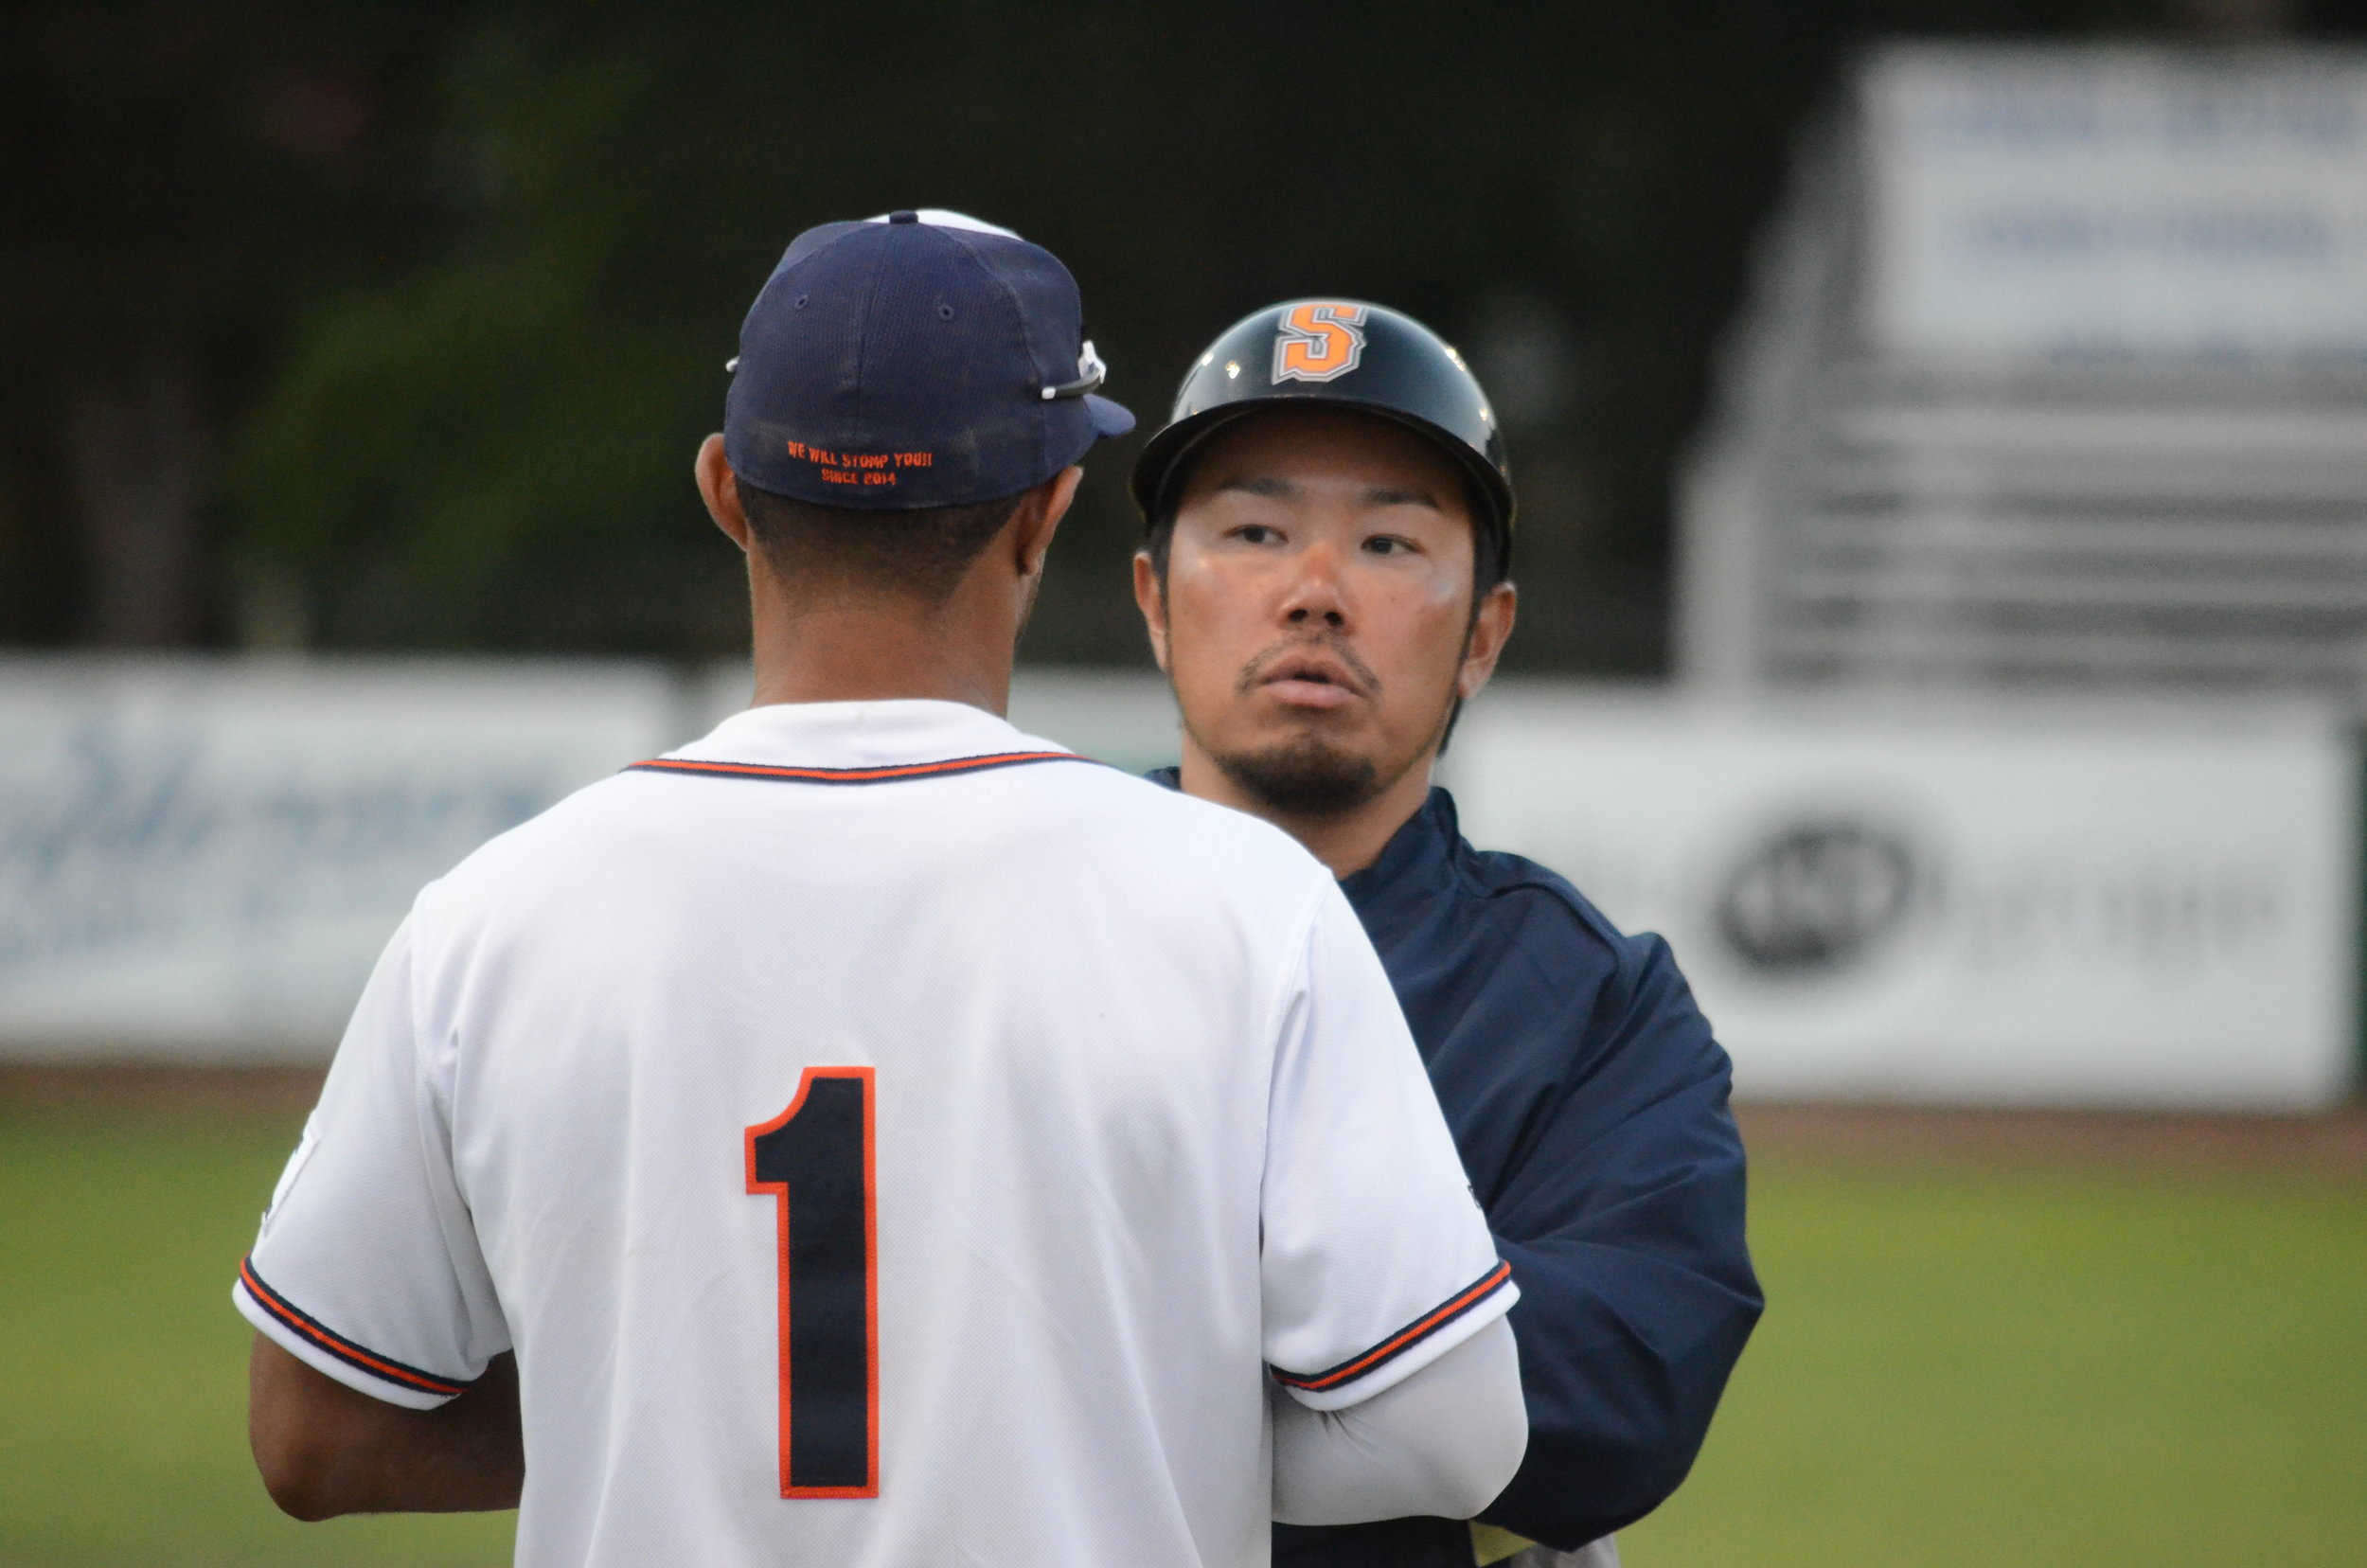 Sonoma Stompers Manager Takashi Miyoshi was selected by General Managers, Managers, and Broadcasters from around the Pacific Association as the 2016 Manager of the Year.   James Toy III/ Sonoma Stompers